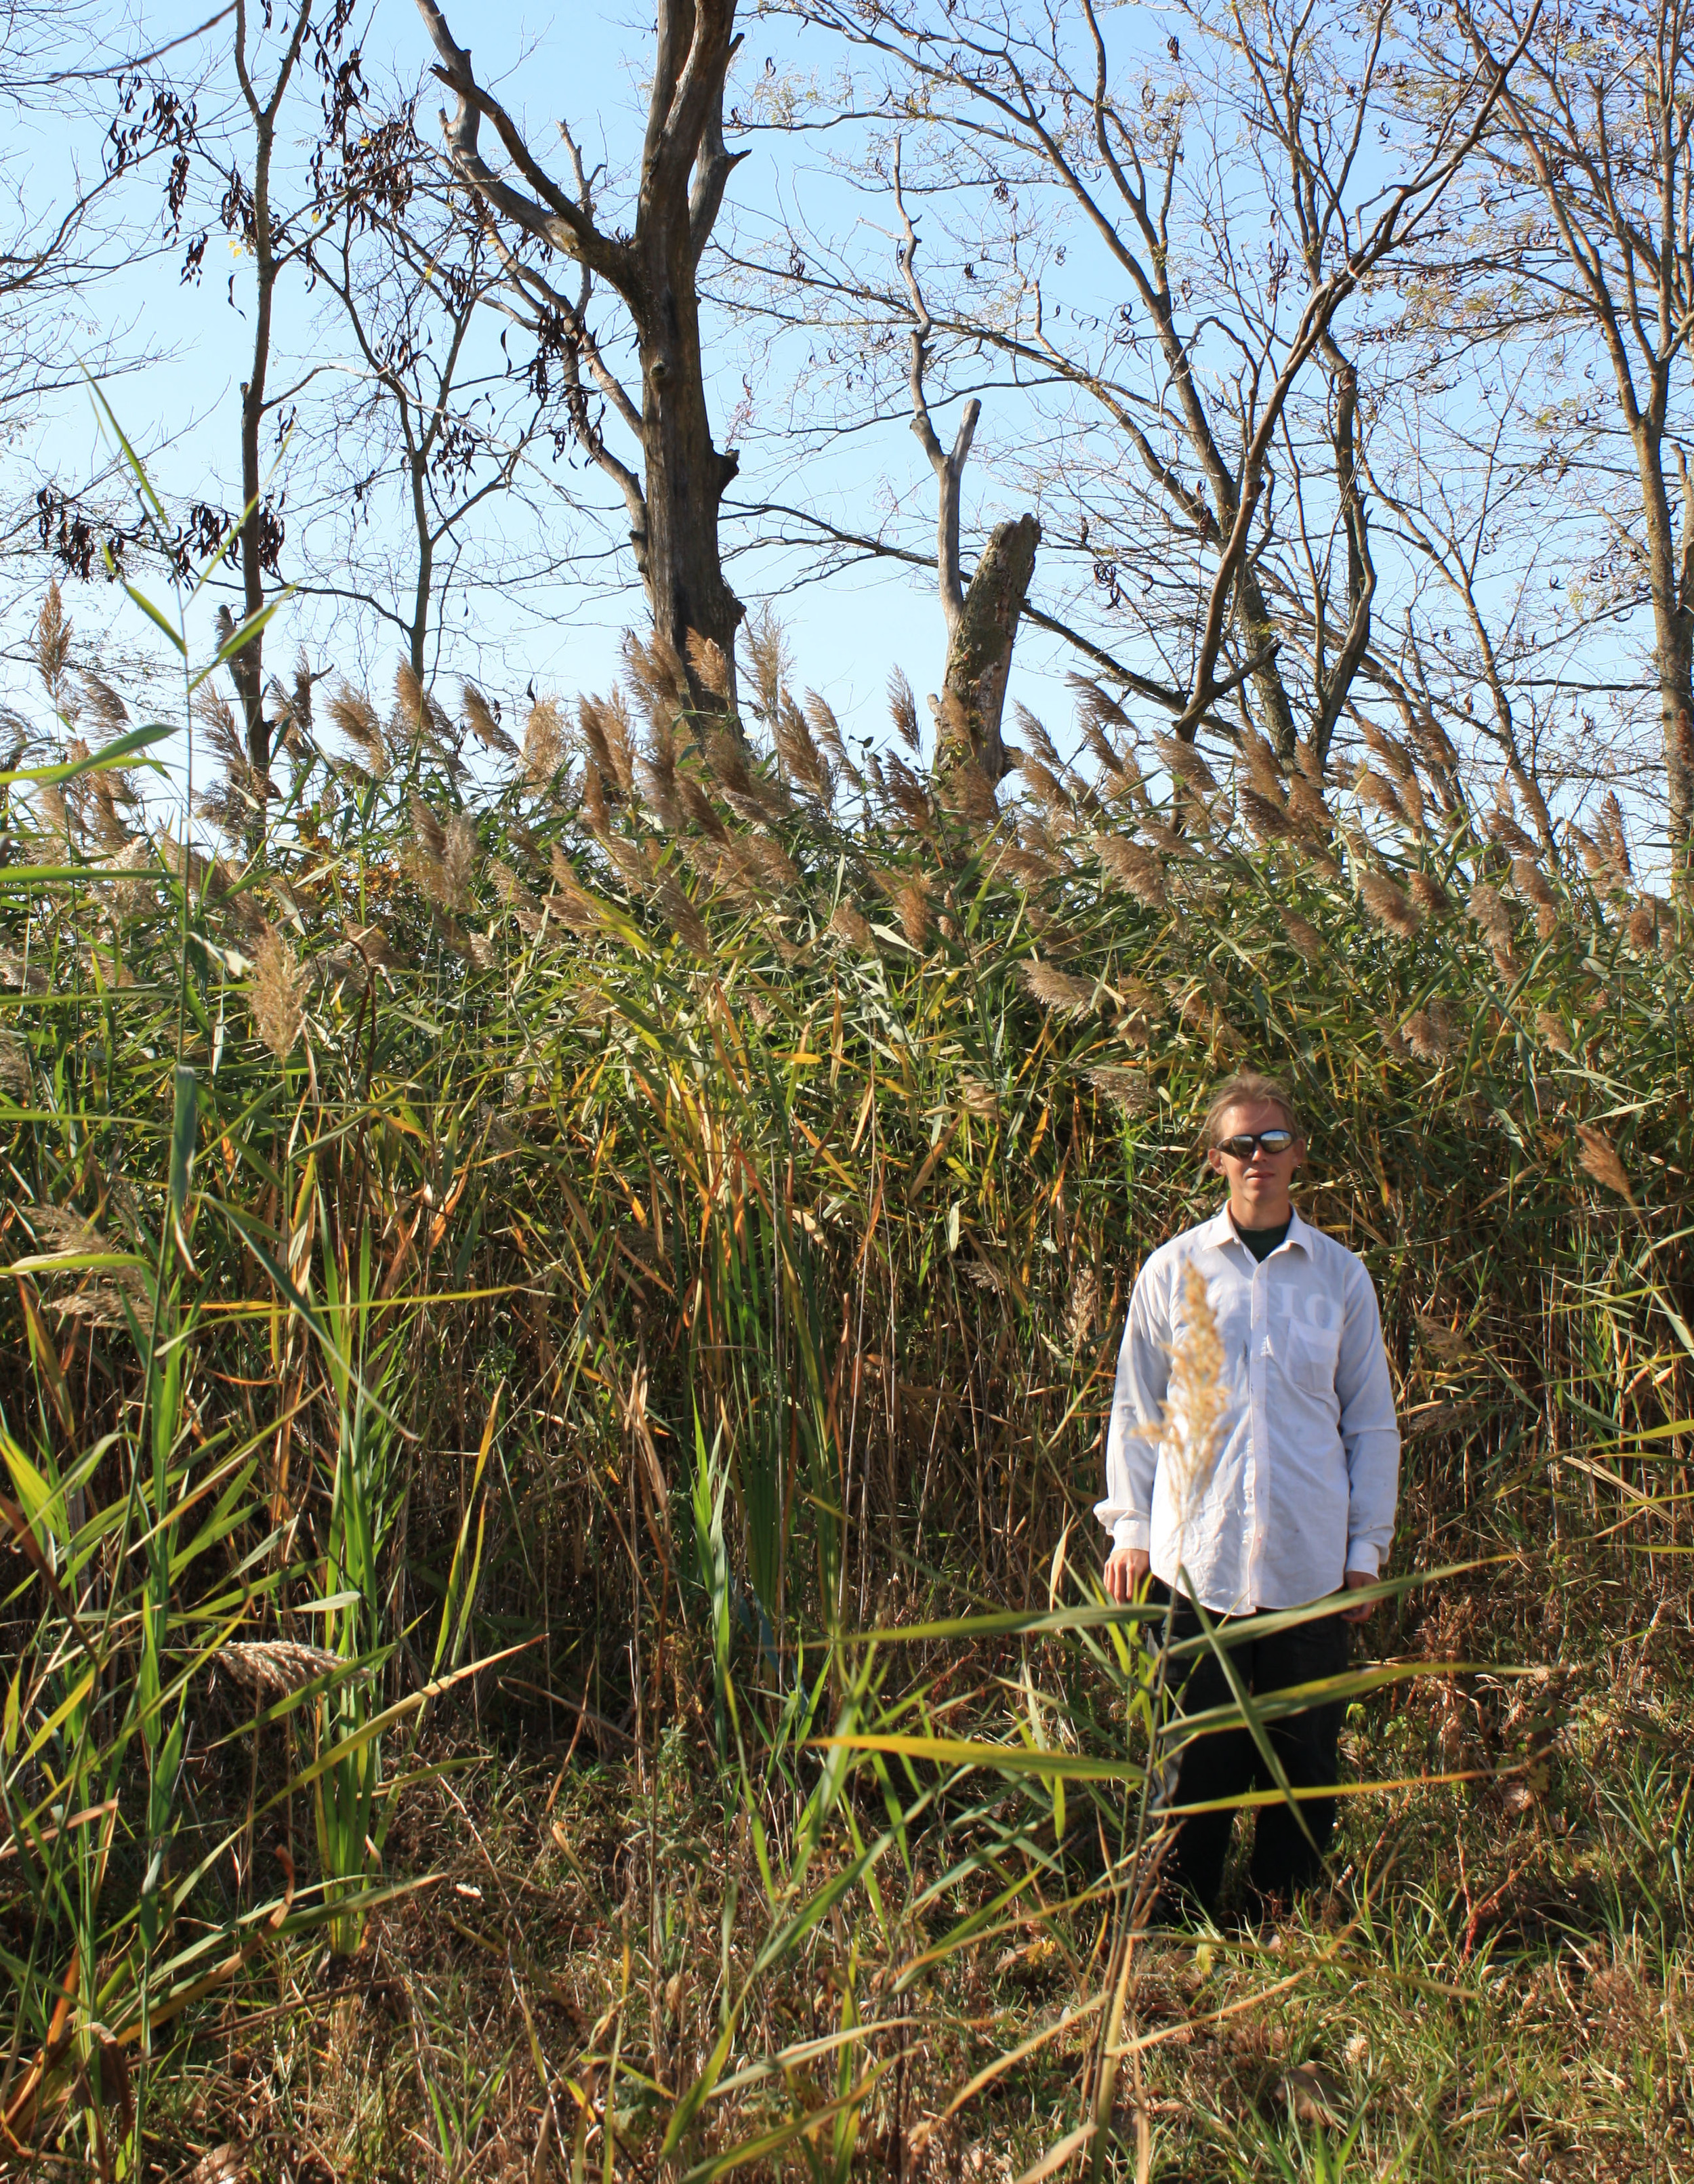 A TWI field restoration crew member next to a tall stand of invasive Phragmites at Midewin.